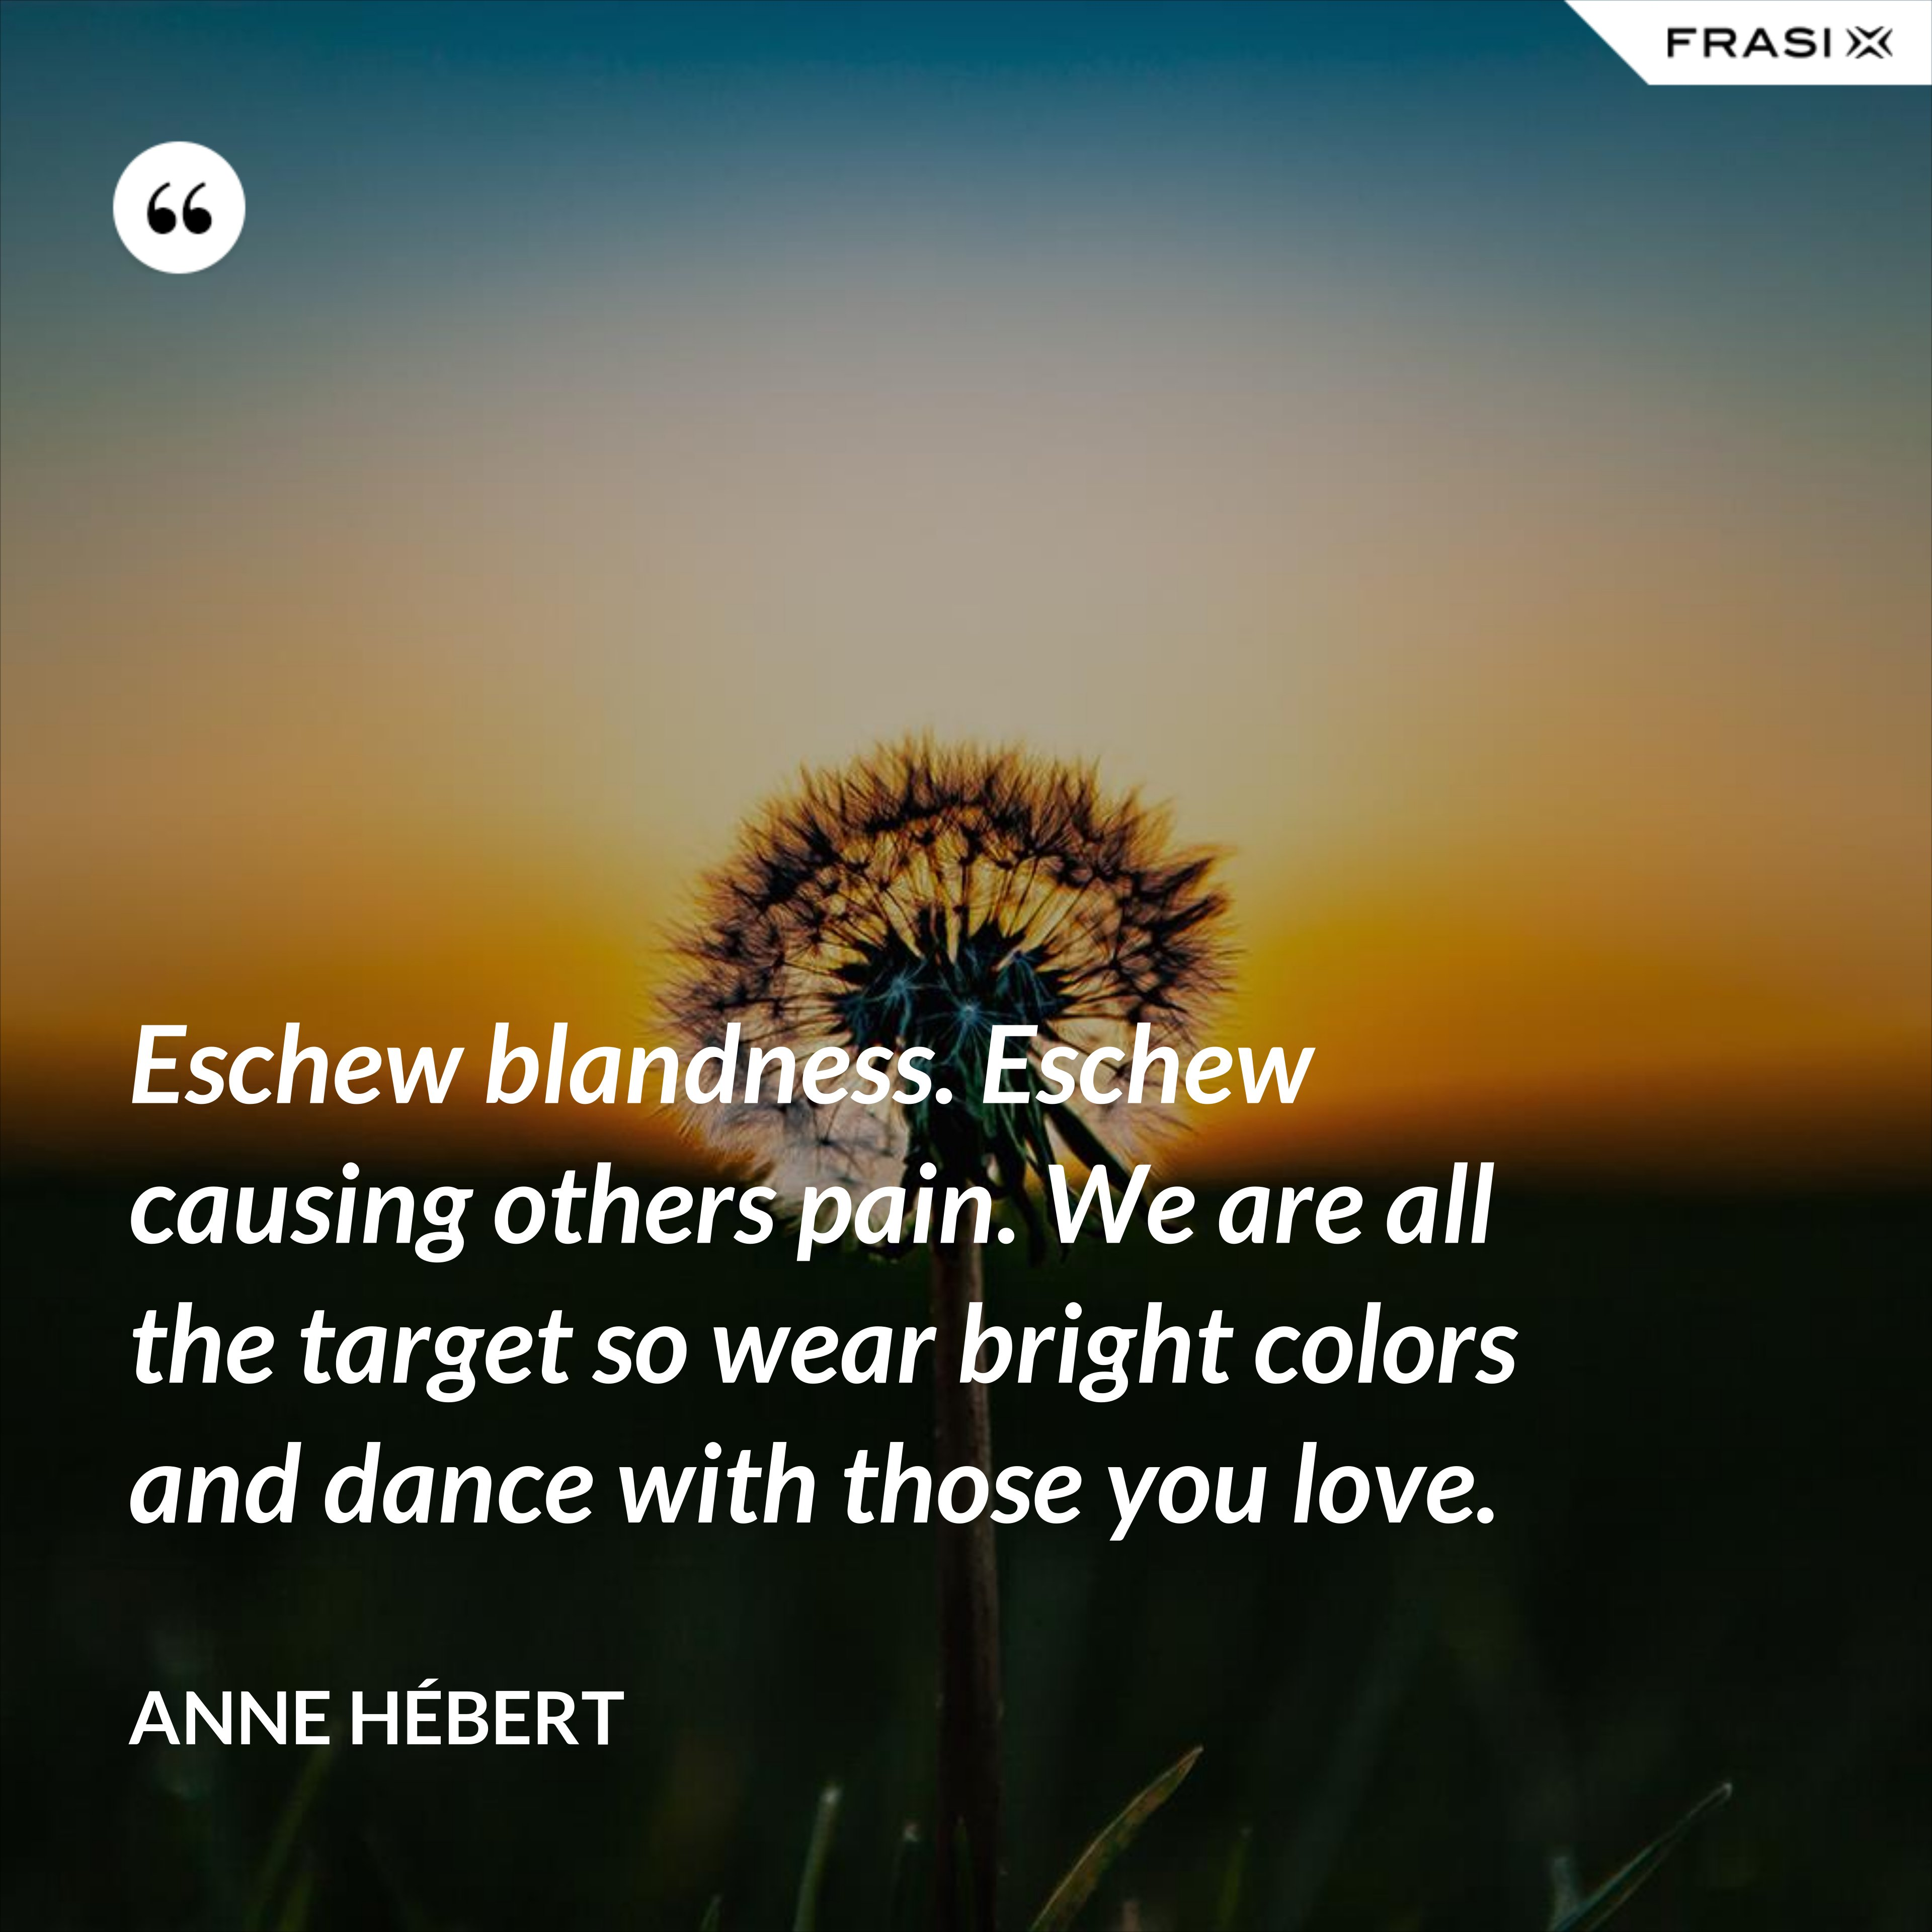 Eschew blandness. Eschew causing others pain. We are all the target so wear bright colors and dance with those you love. - Anne Hébert